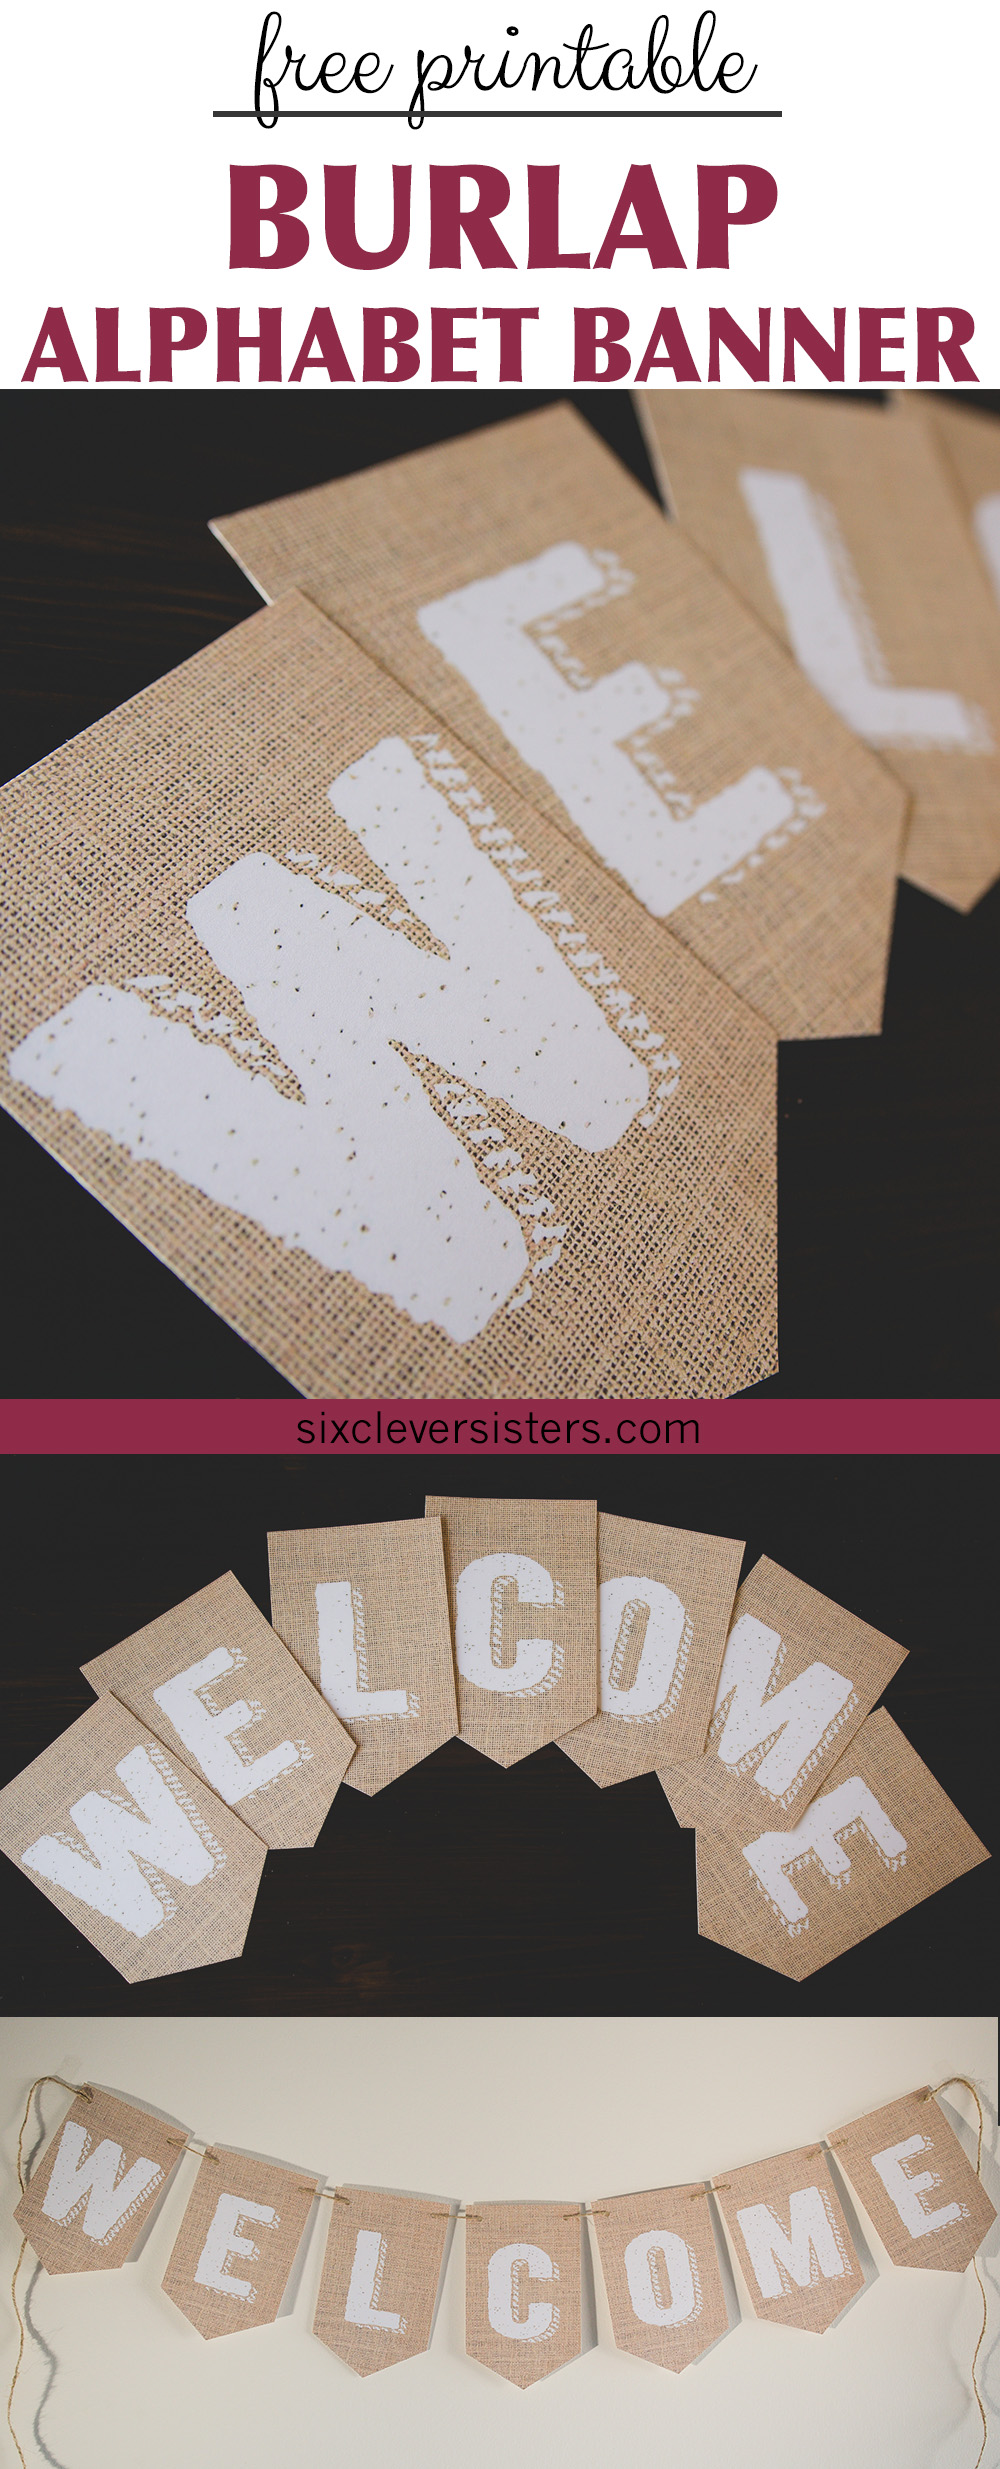 photo regarding Printable Burlap Paper referred to as Printable Burlap Banner - 6 Intelligent Sisters